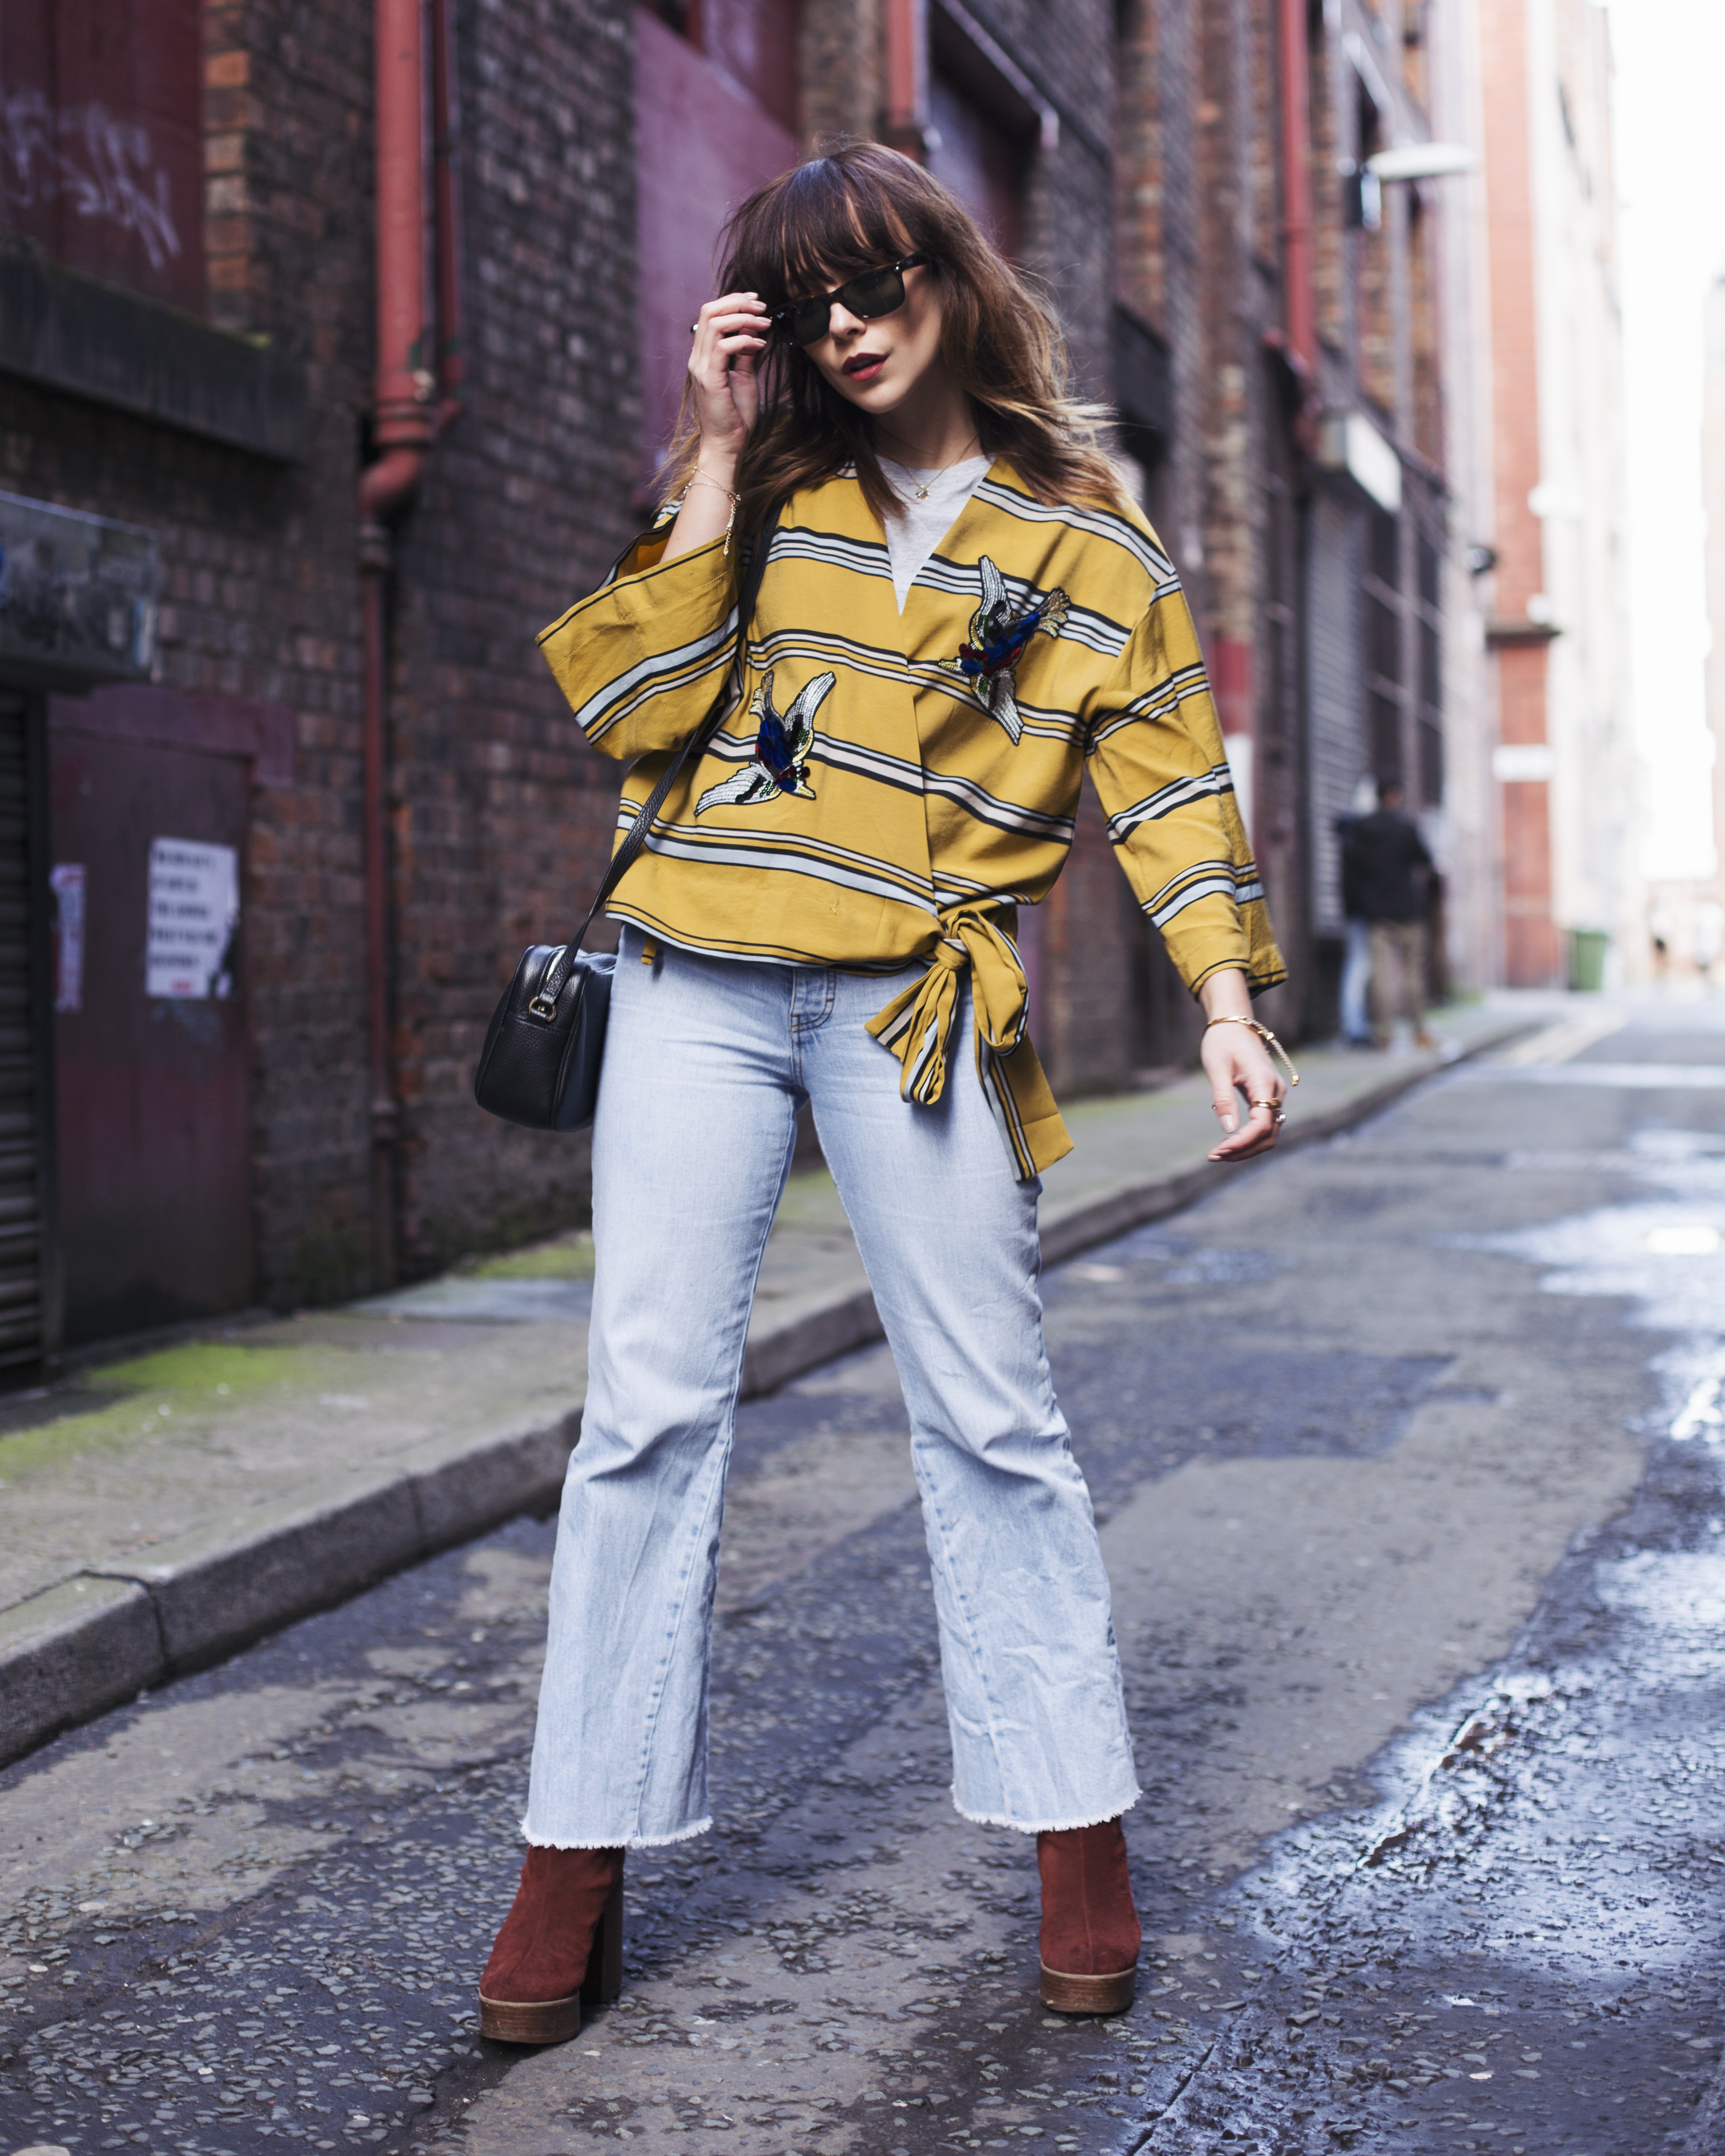 MEGAN ELLABY WEARS SEVENTIES STYLE WITH RAYBAN WAYFARER